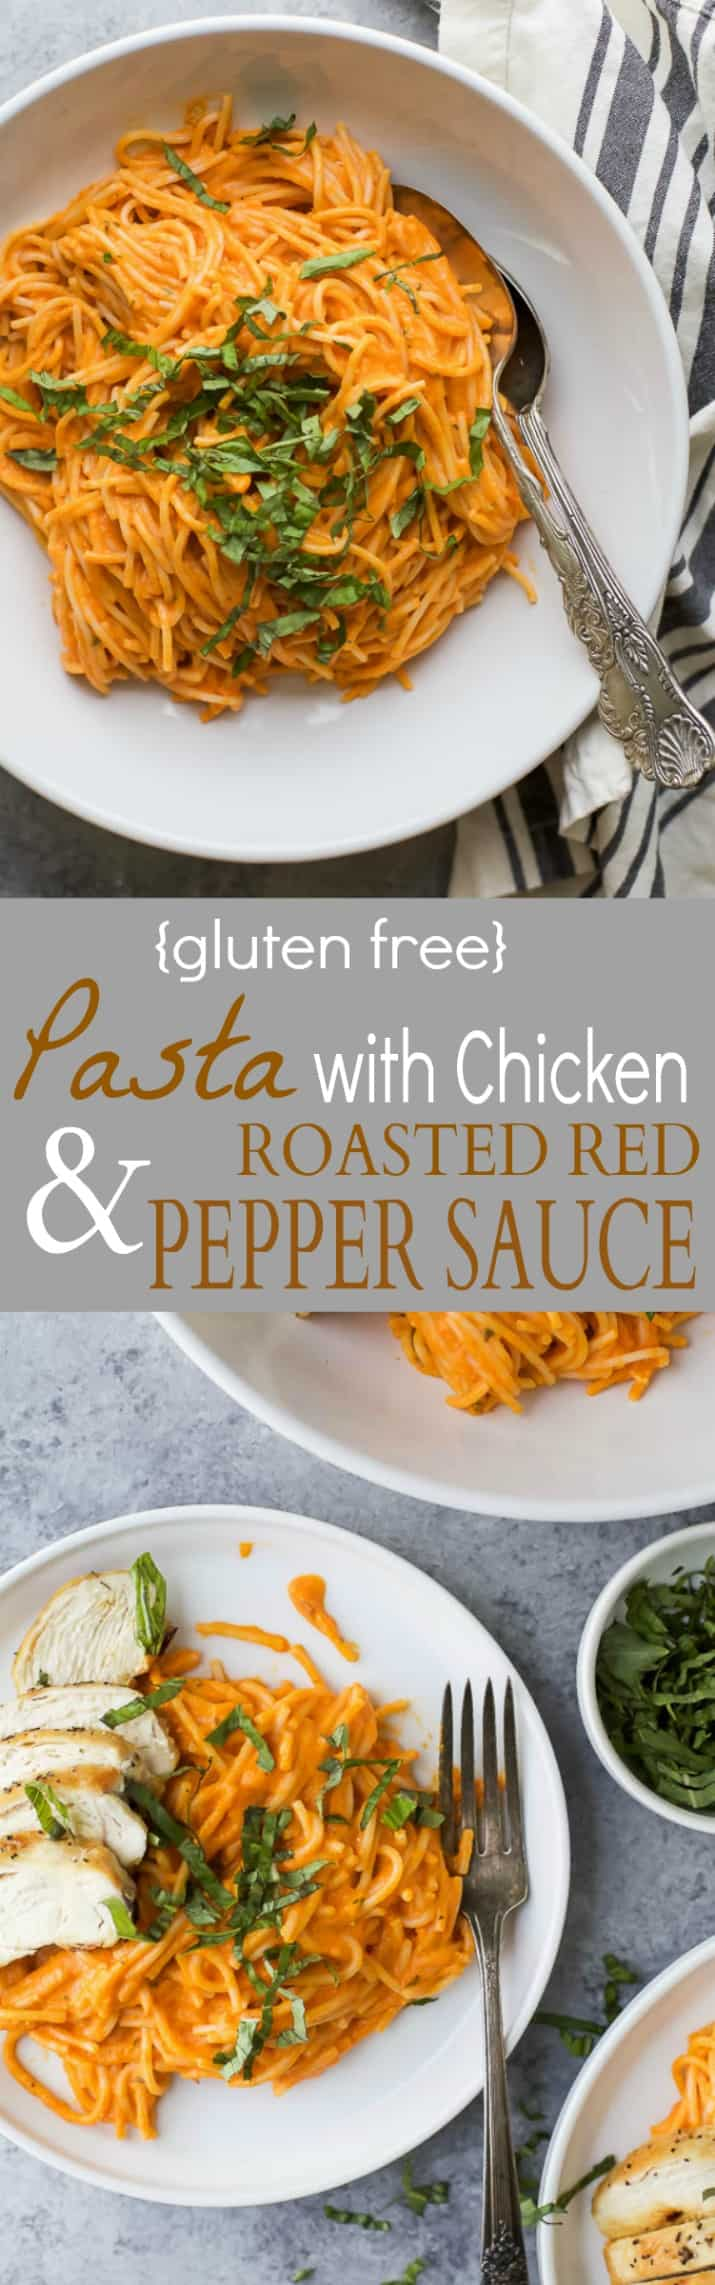 Gluten Free Pasta served with pan seared Chicken and a Creamy Roasted Red Pepper Sauce - made in 30 minutes! This gluten free pasta recipe is easy, comforting and guaranteed to be a family favorite!!